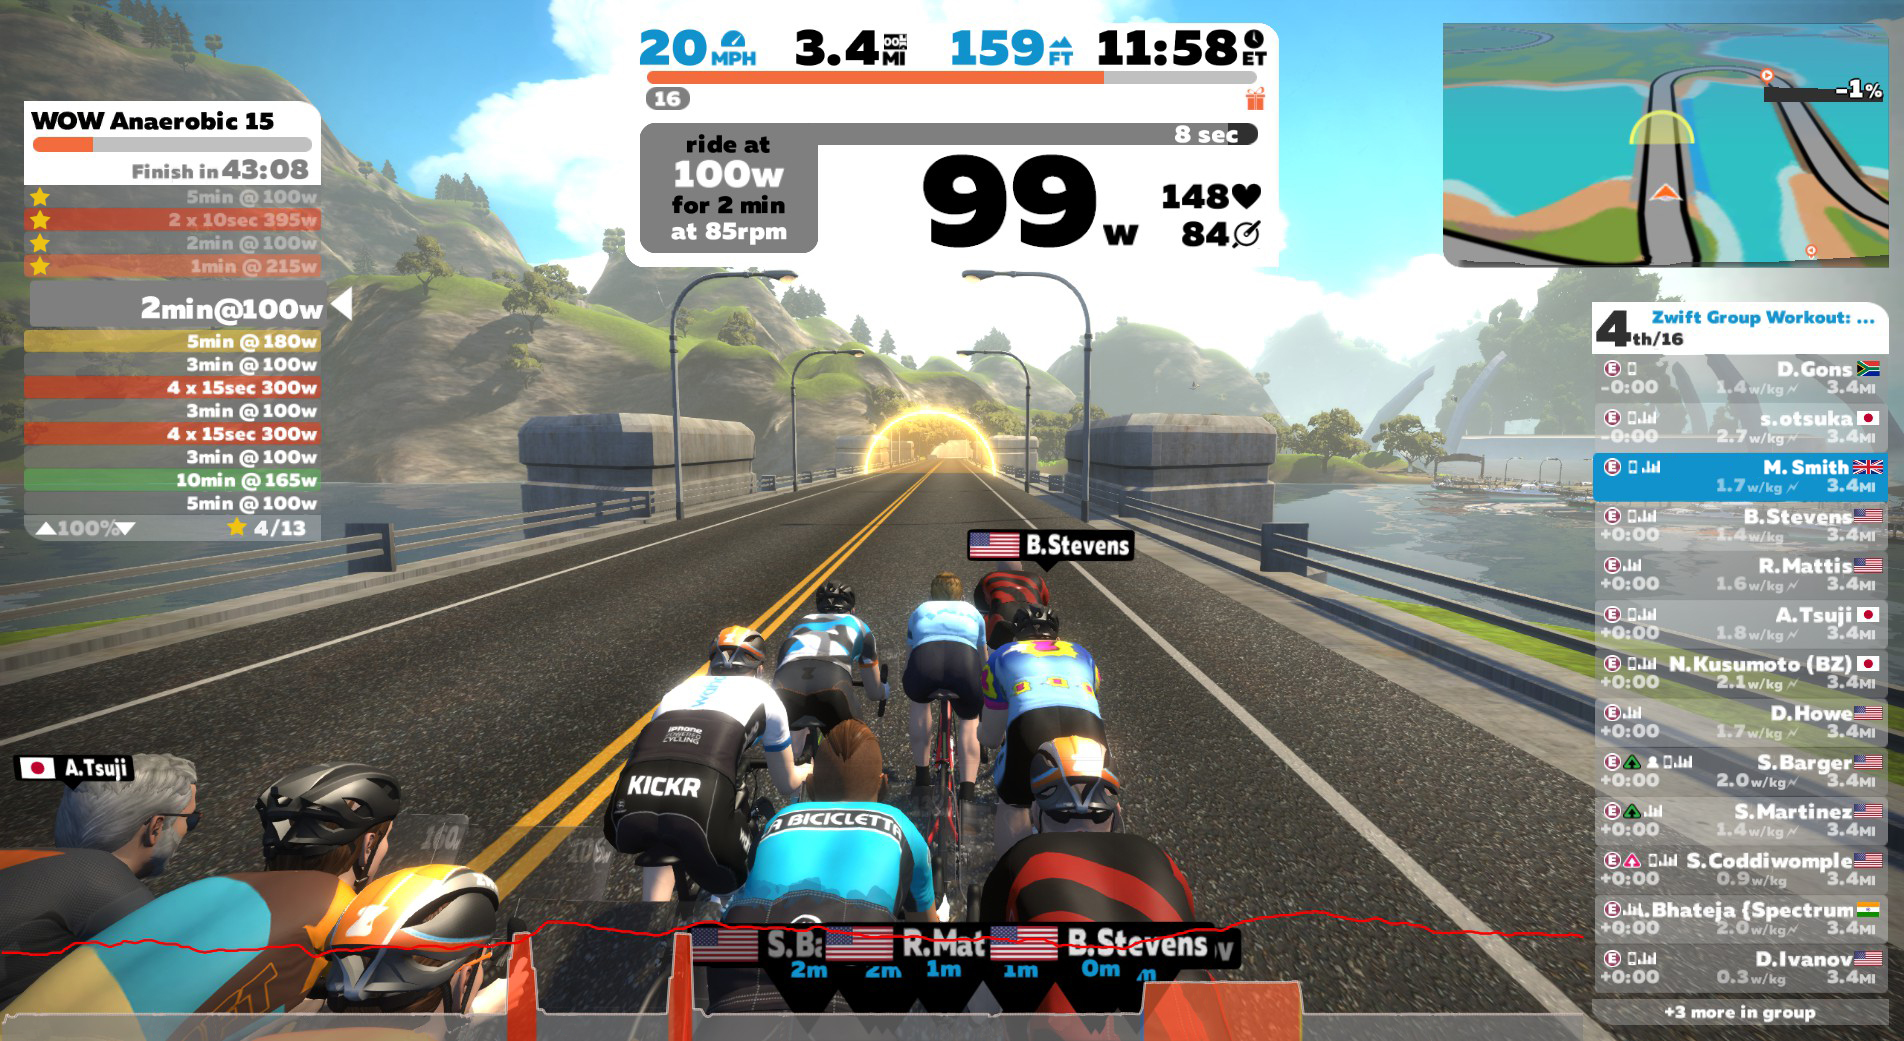 Zwift workout